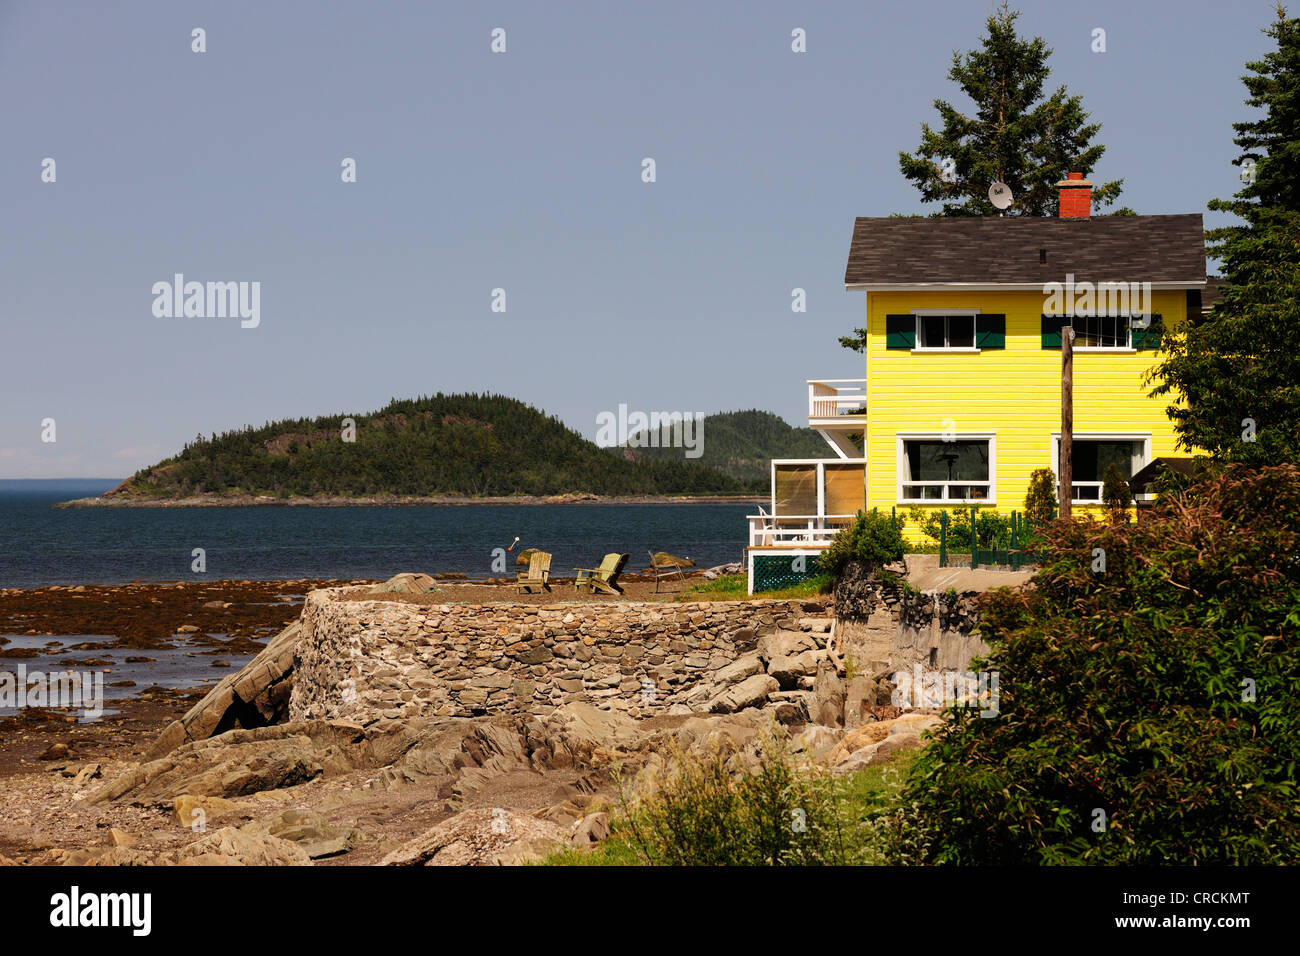 House on the St. Lawrence River, Gaspe Peninsula, Gaspésie, Quebec, Canada - Stock Image